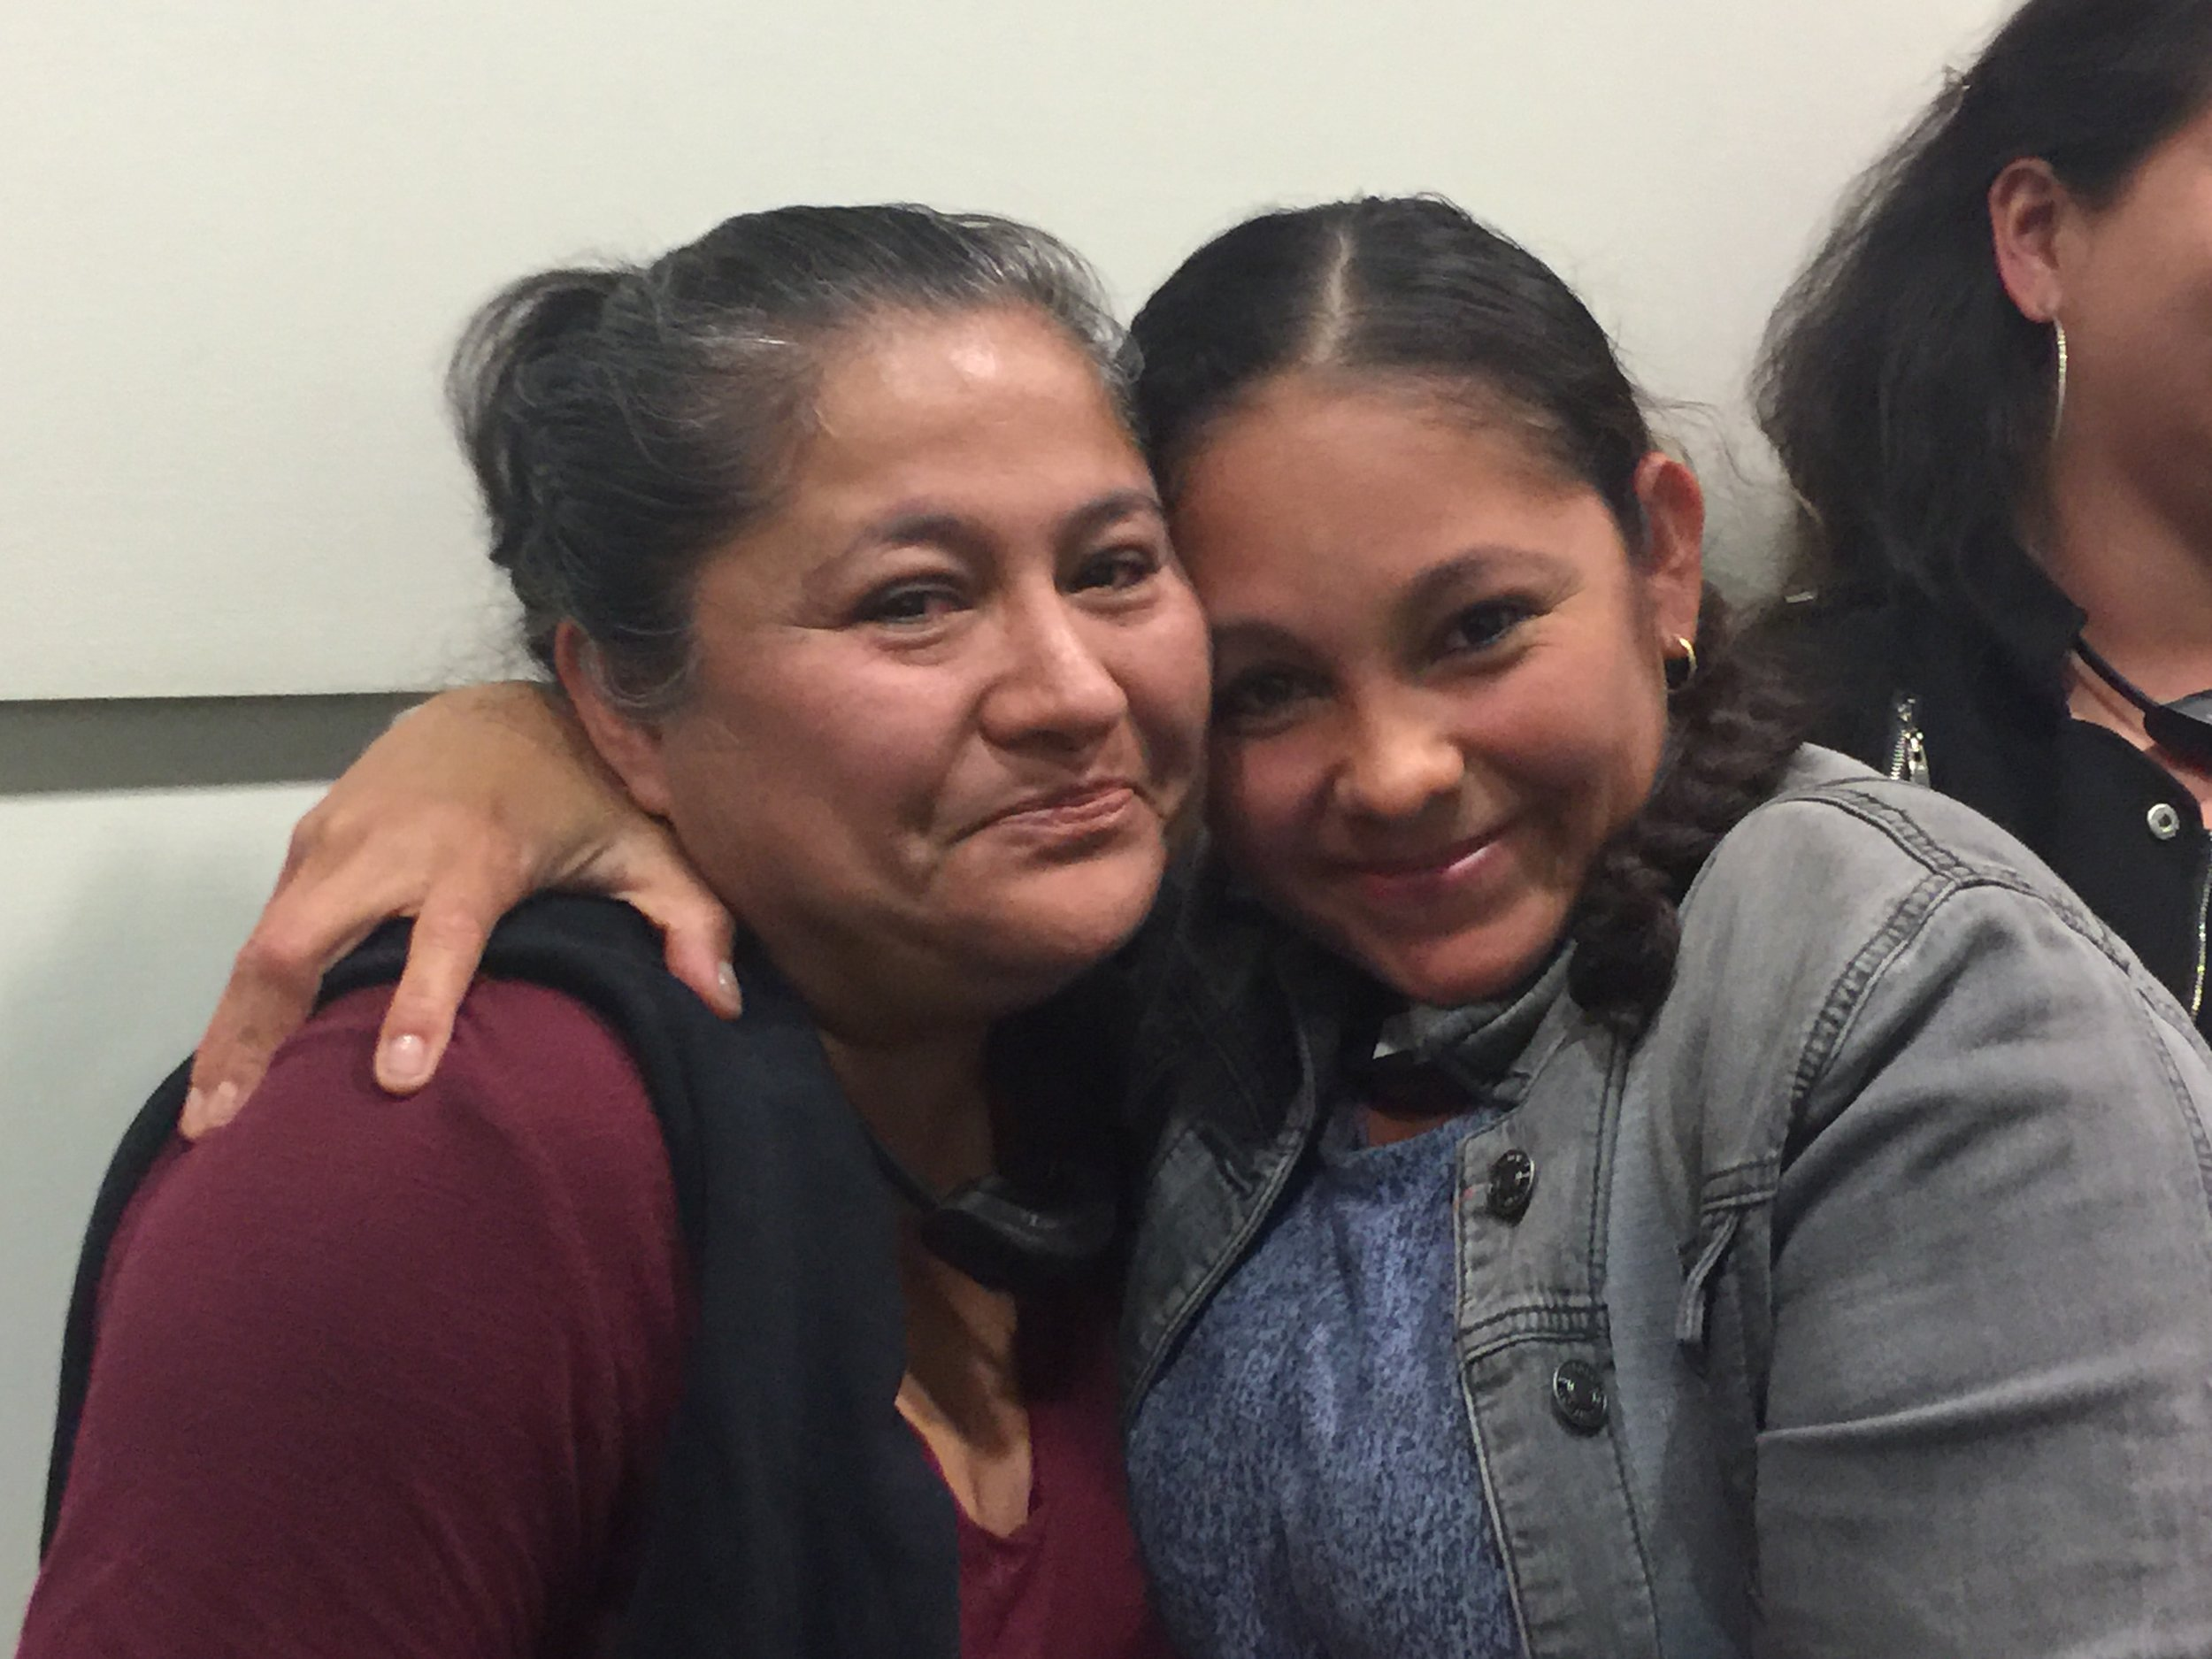 Soralia Castro (left) with Griselda Rauda. Soralia took her child out of the school.